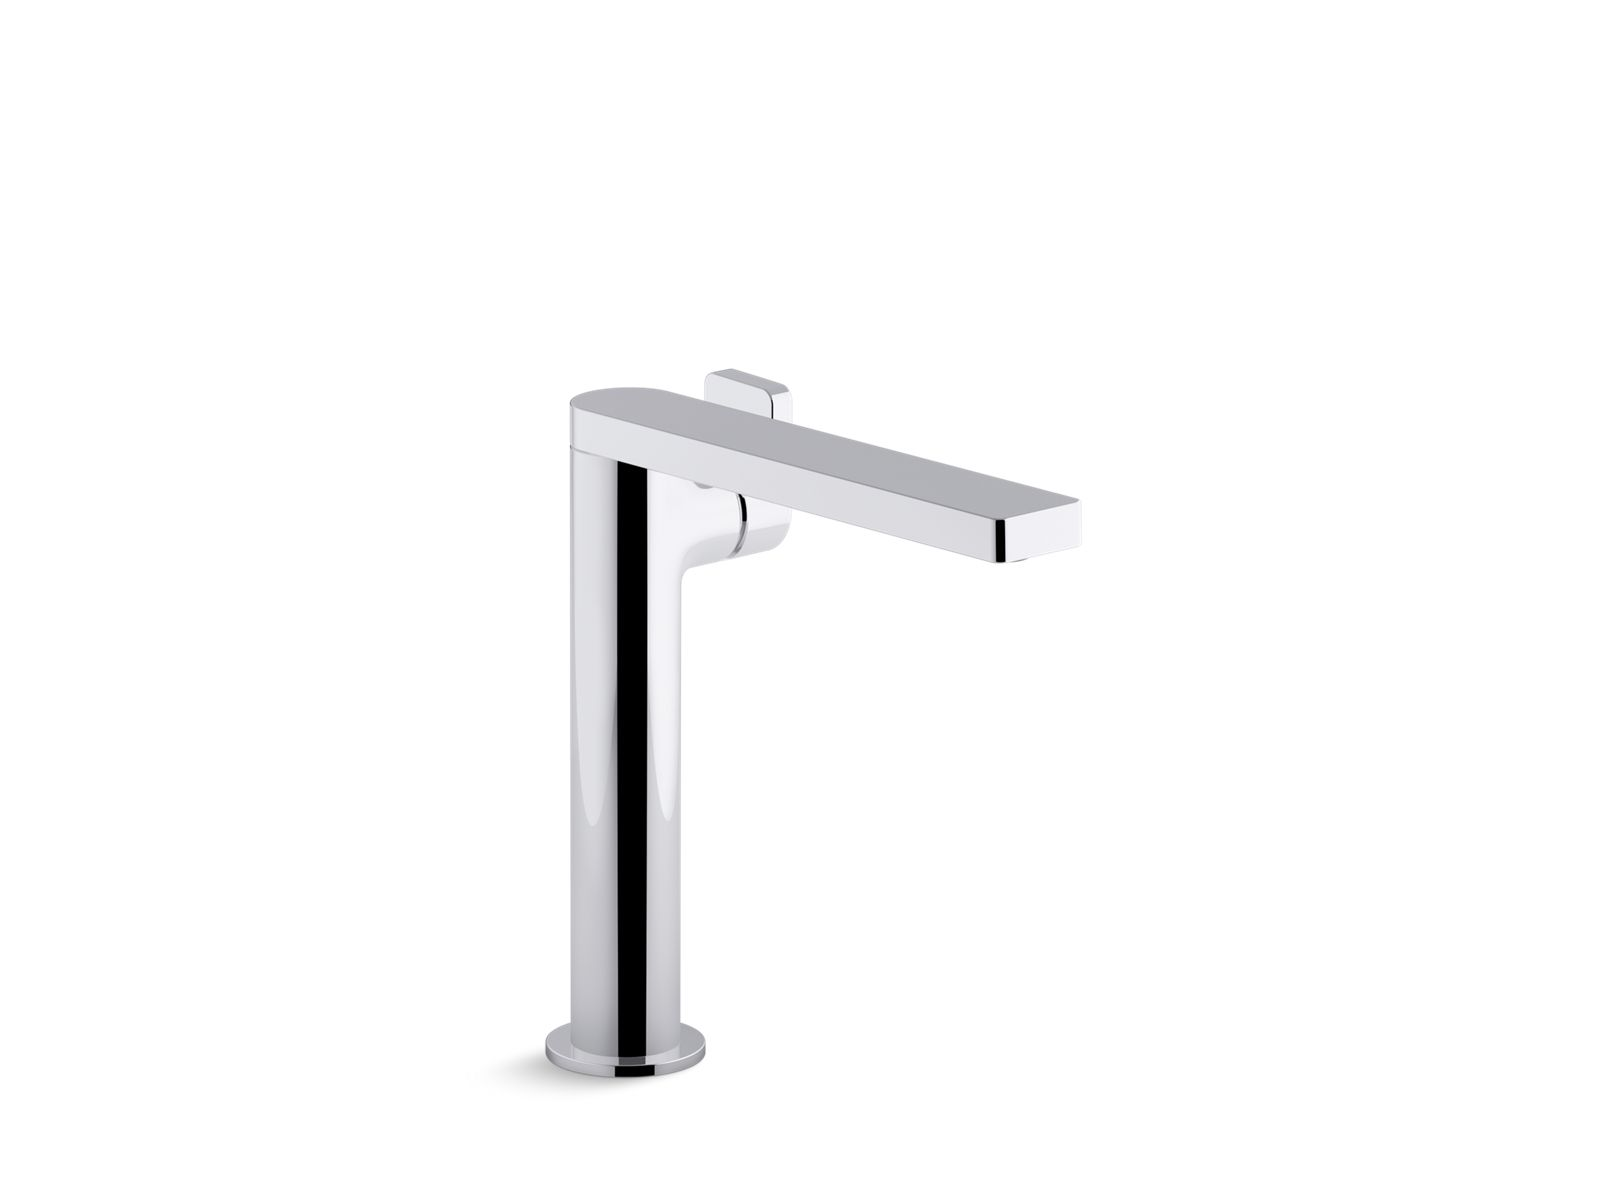 K 73168 4 | Composed Tall Single Handle Bathroom Sink Faucet | KOHLER